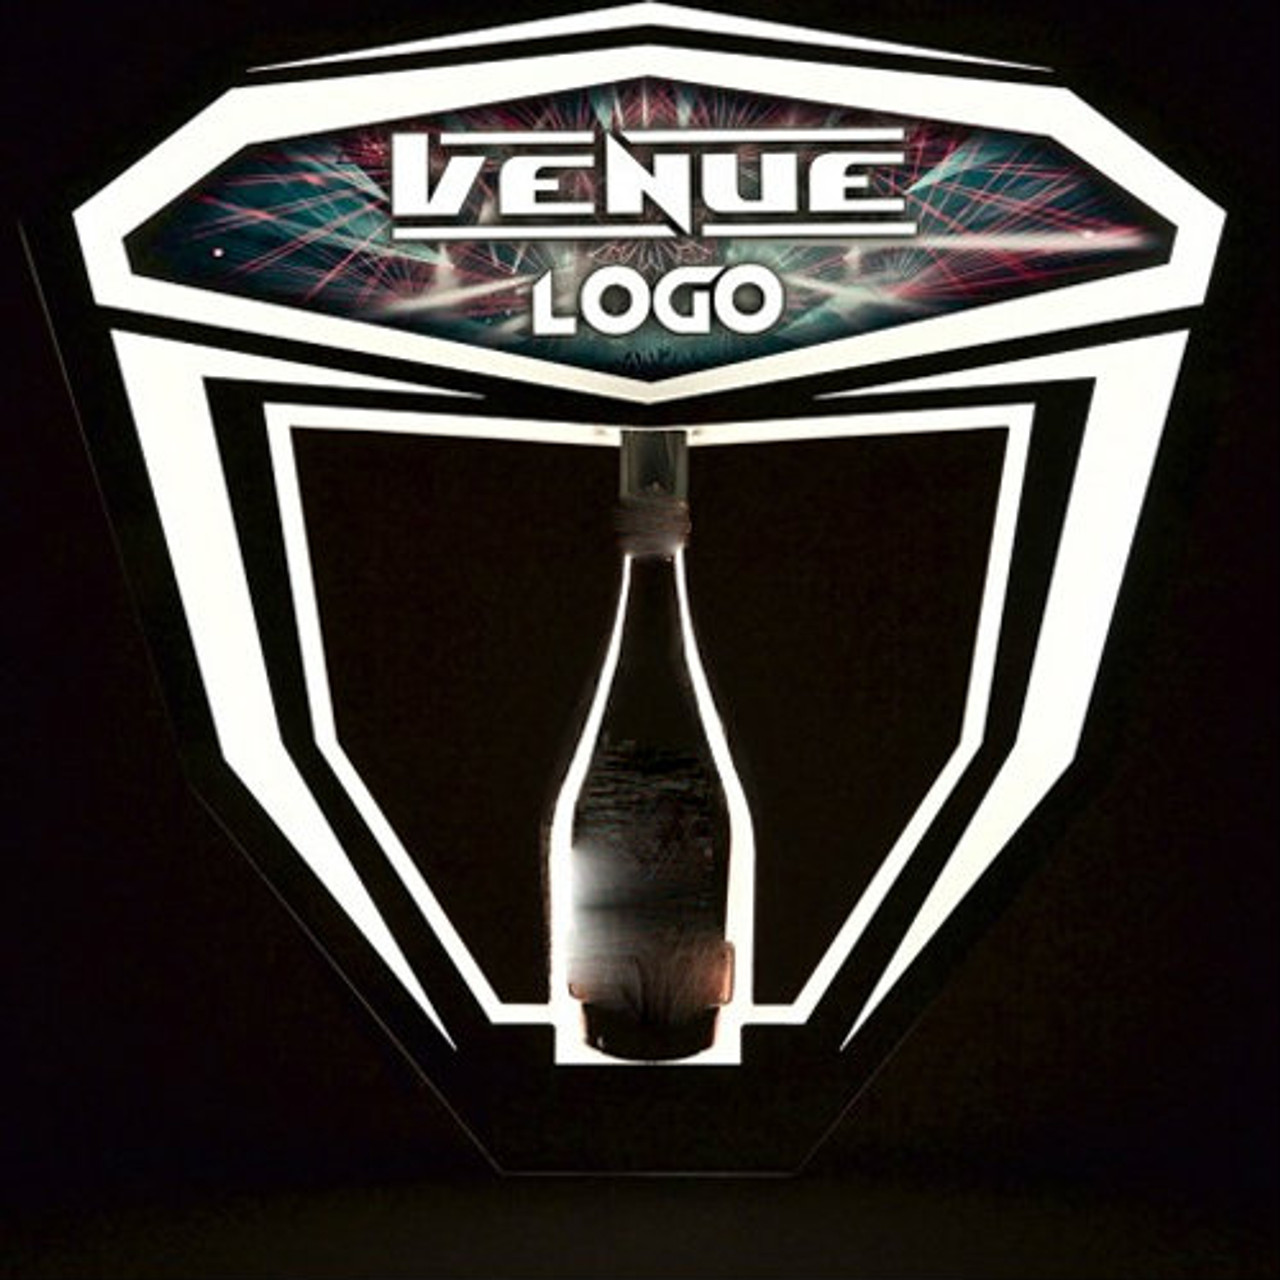 Venue,Custom,Logo,Name,Art,Bottle,Service,Champagne,Delivery,VIP,LED,Tray,Custom made,personalized,name,club,venue,presenter